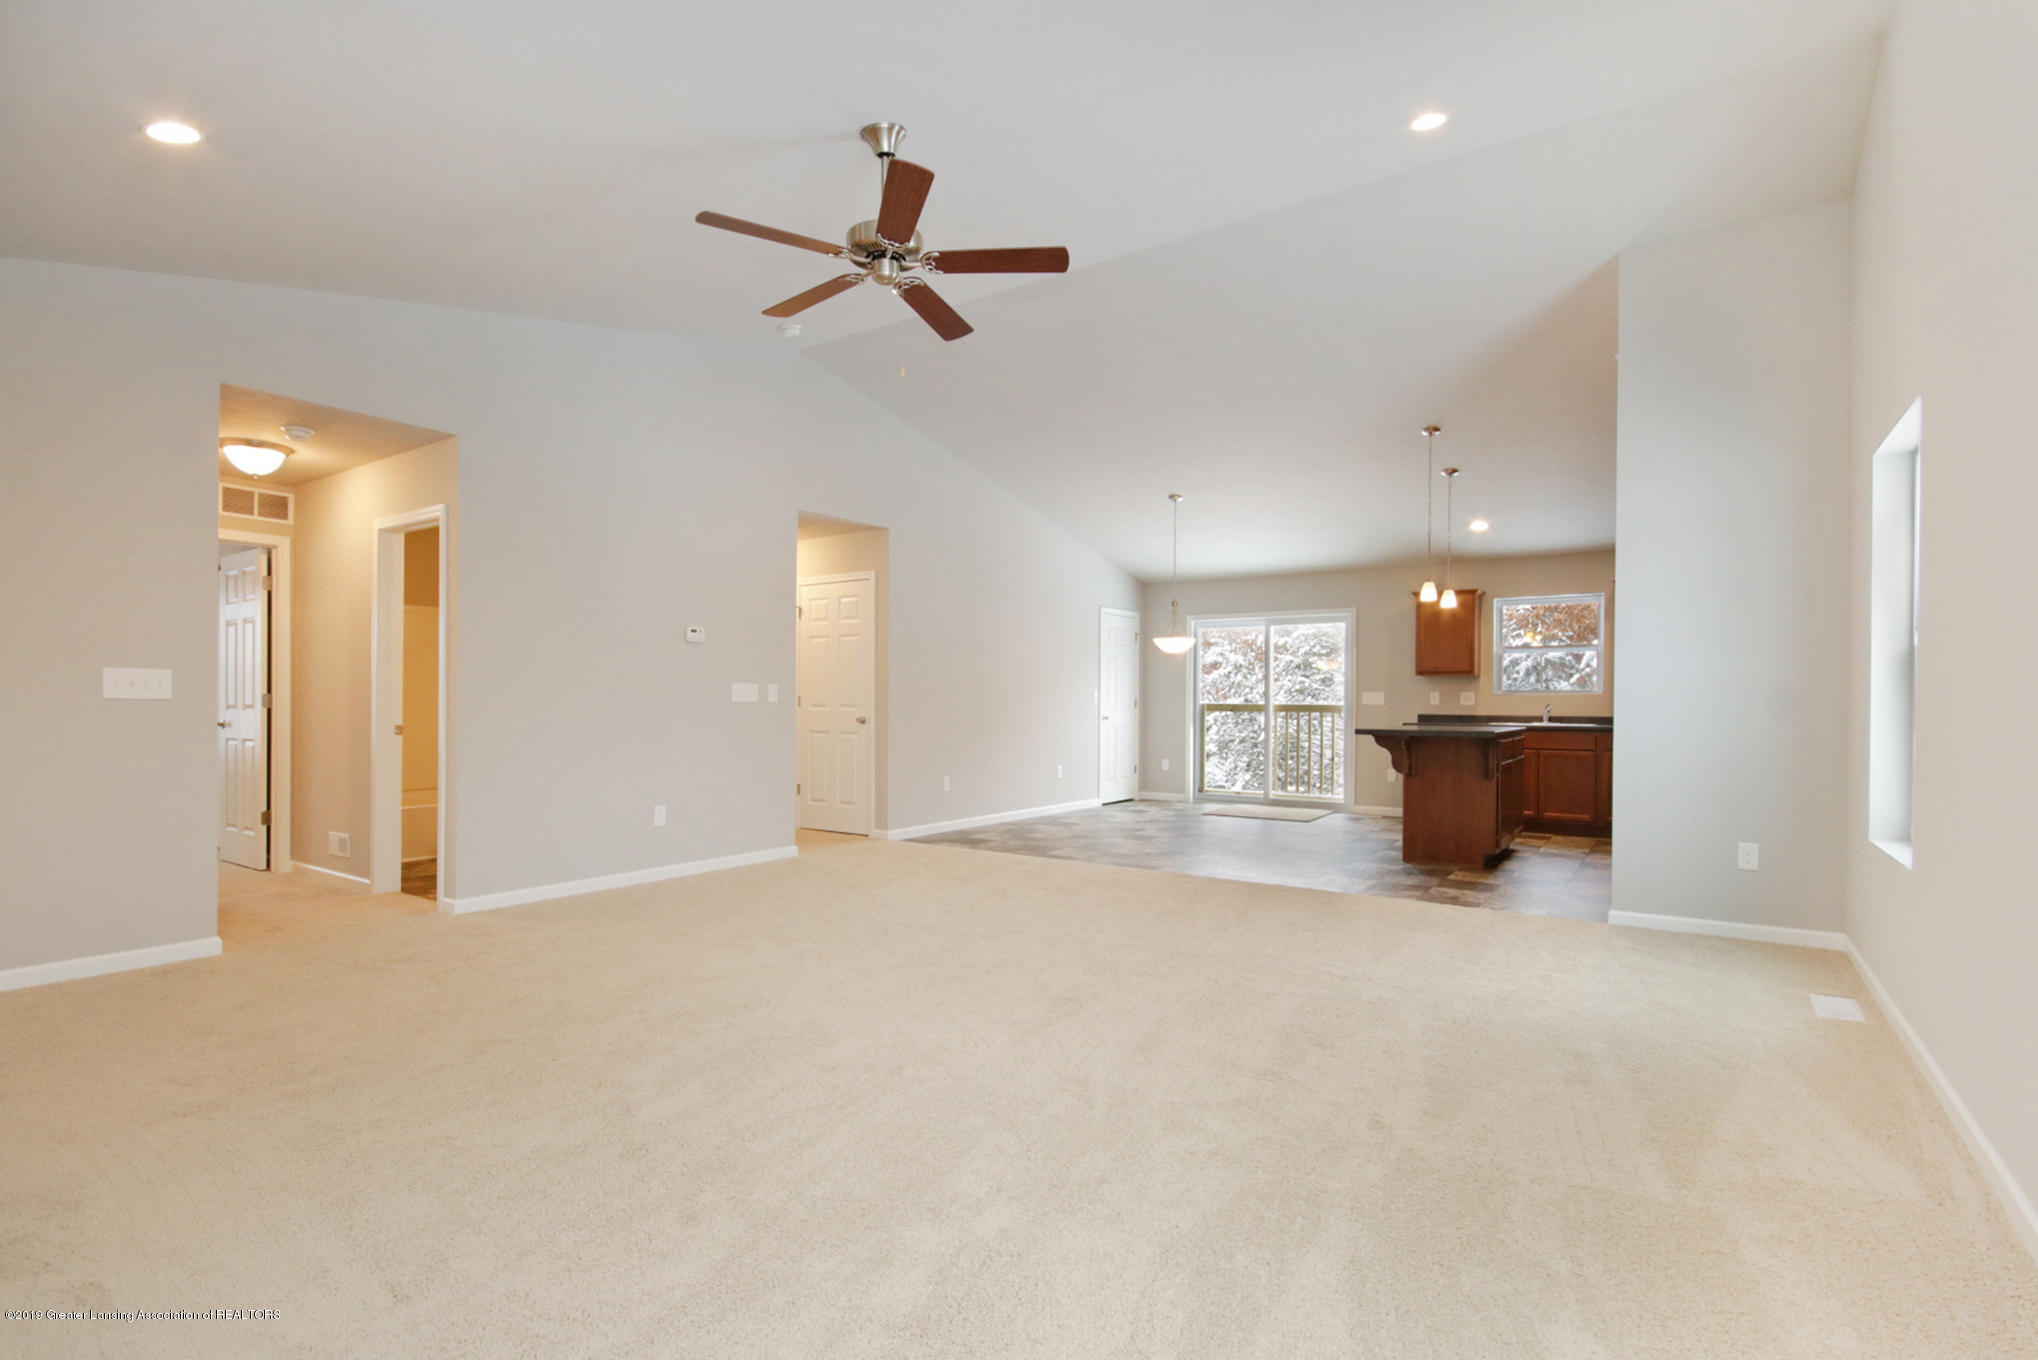 14171 Cordaleigh Dr - GSC035-E1600 Great Room2 - 3